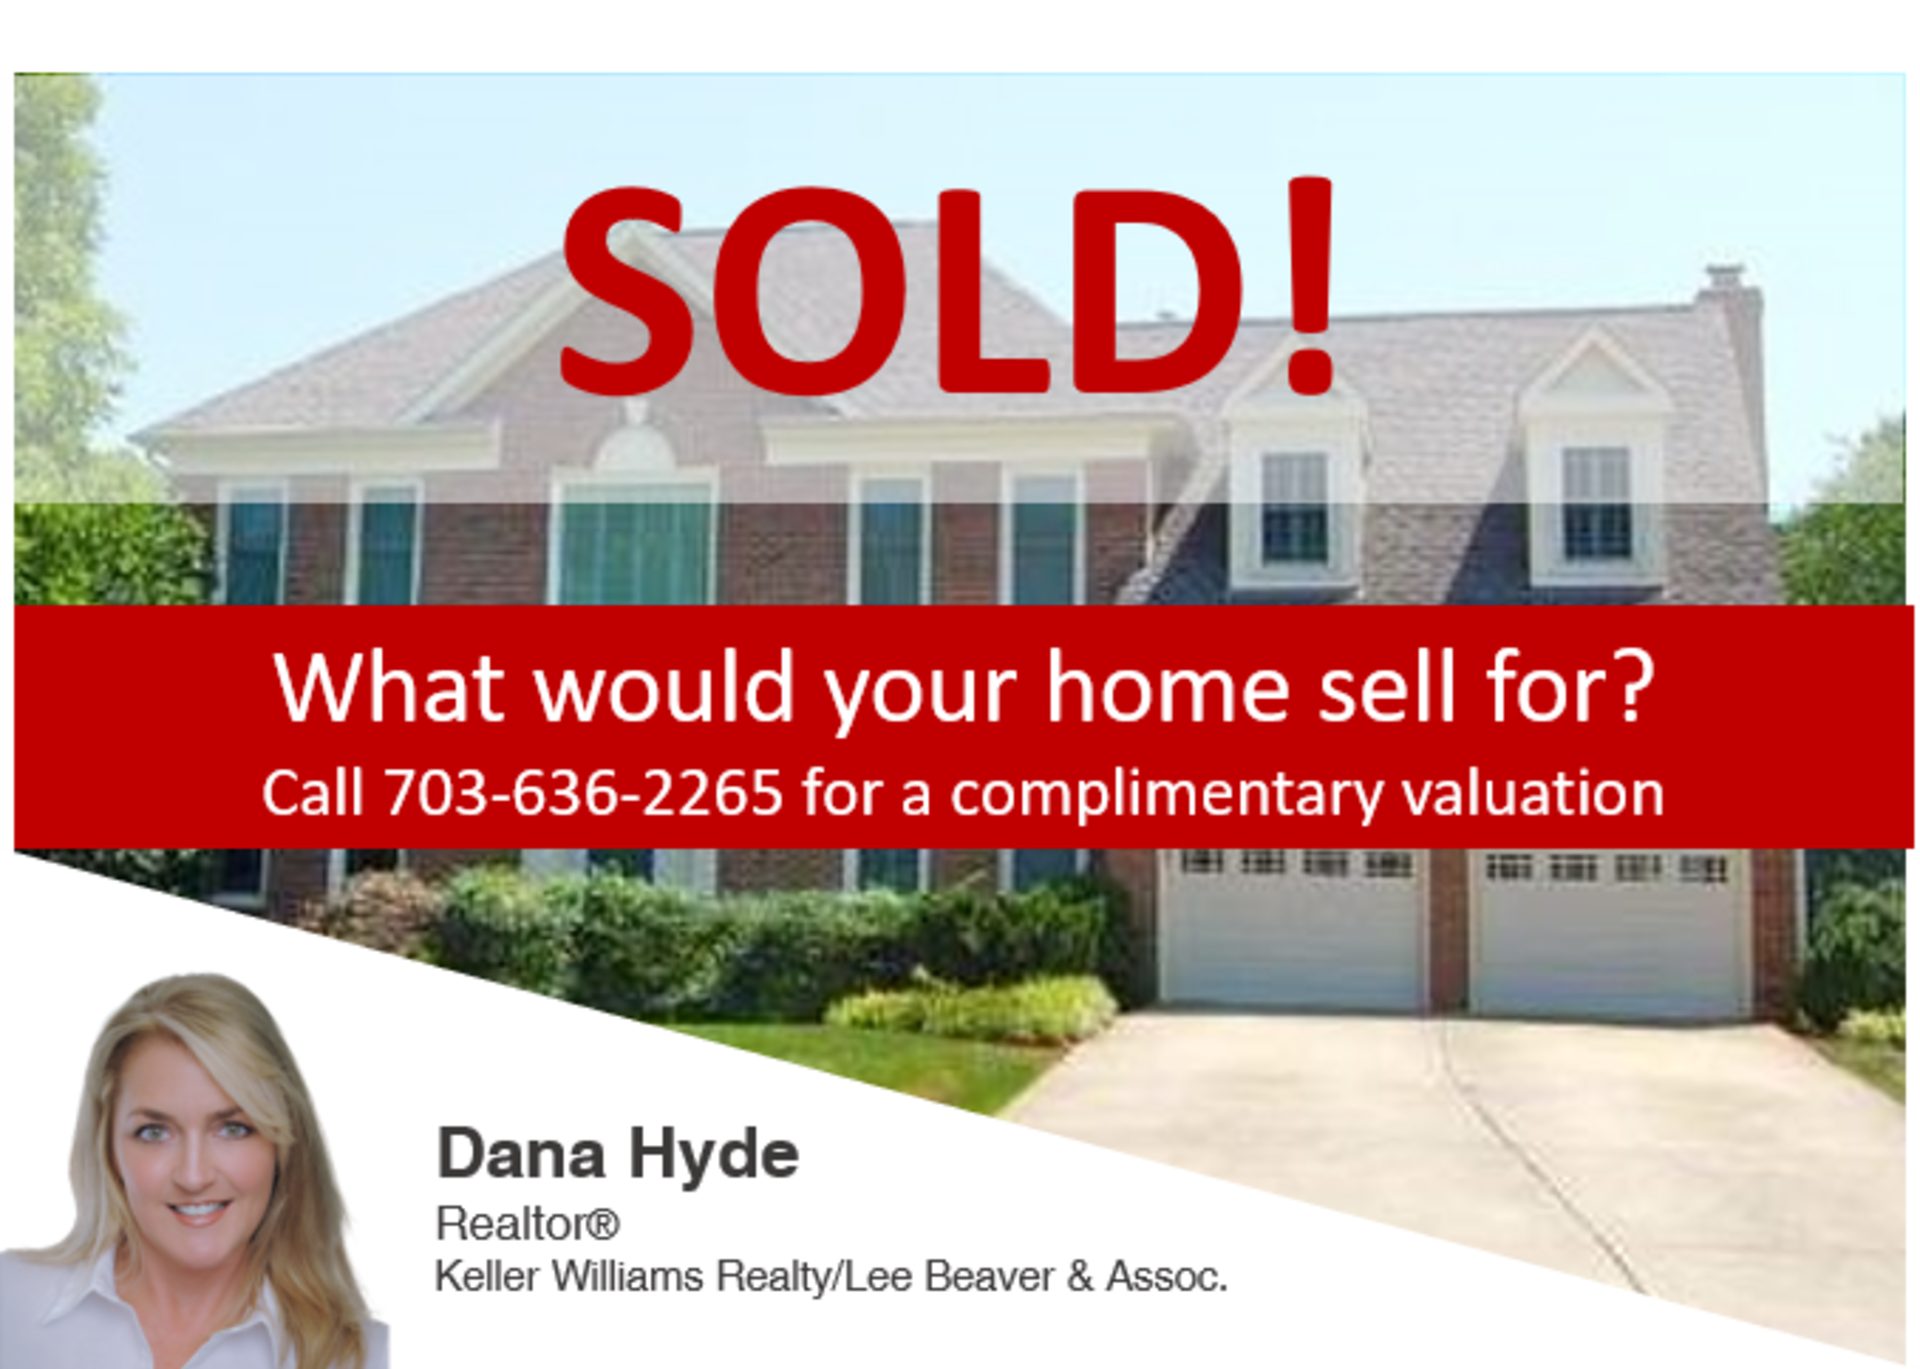 SOLD! What's YOUR home worth?